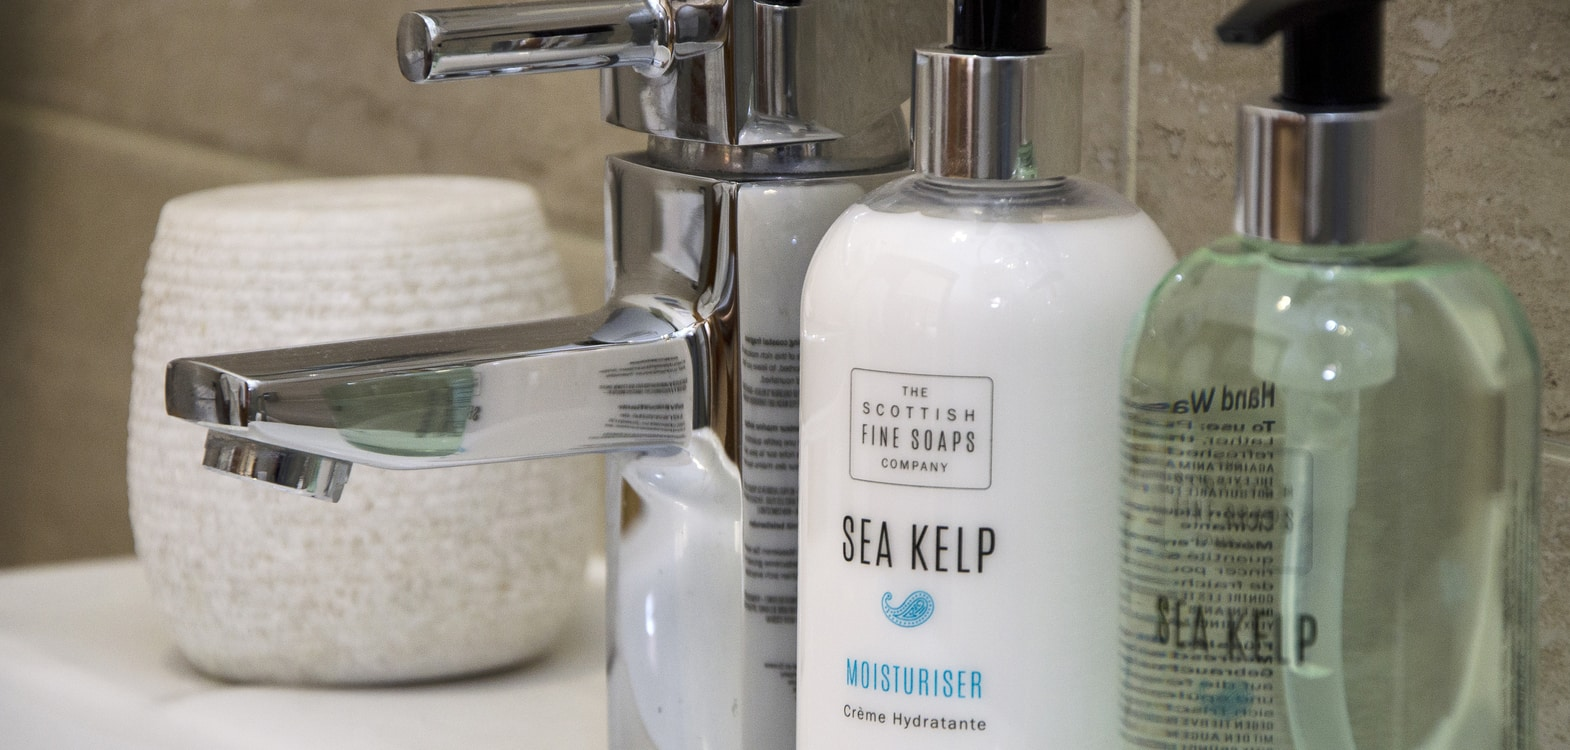 Close up of The Scottish Fine Soaps Company sea kelp handwash and moisturiser with a chrome sink tap